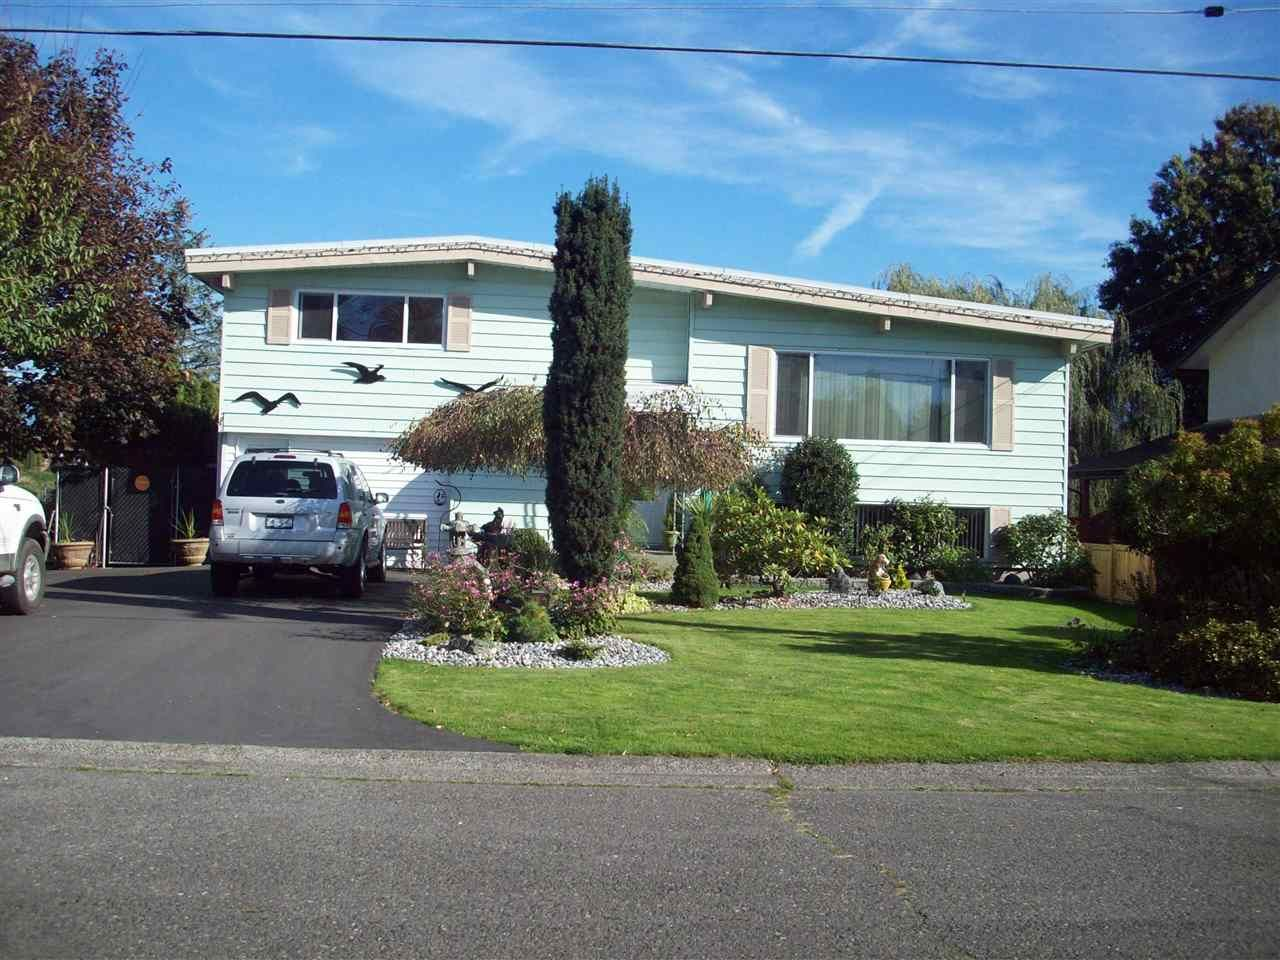 Main Photo: 9254 JAMES STREET in Chilliwack: Chilliwack E Young-Yale House for sale : MLS®# R2117891